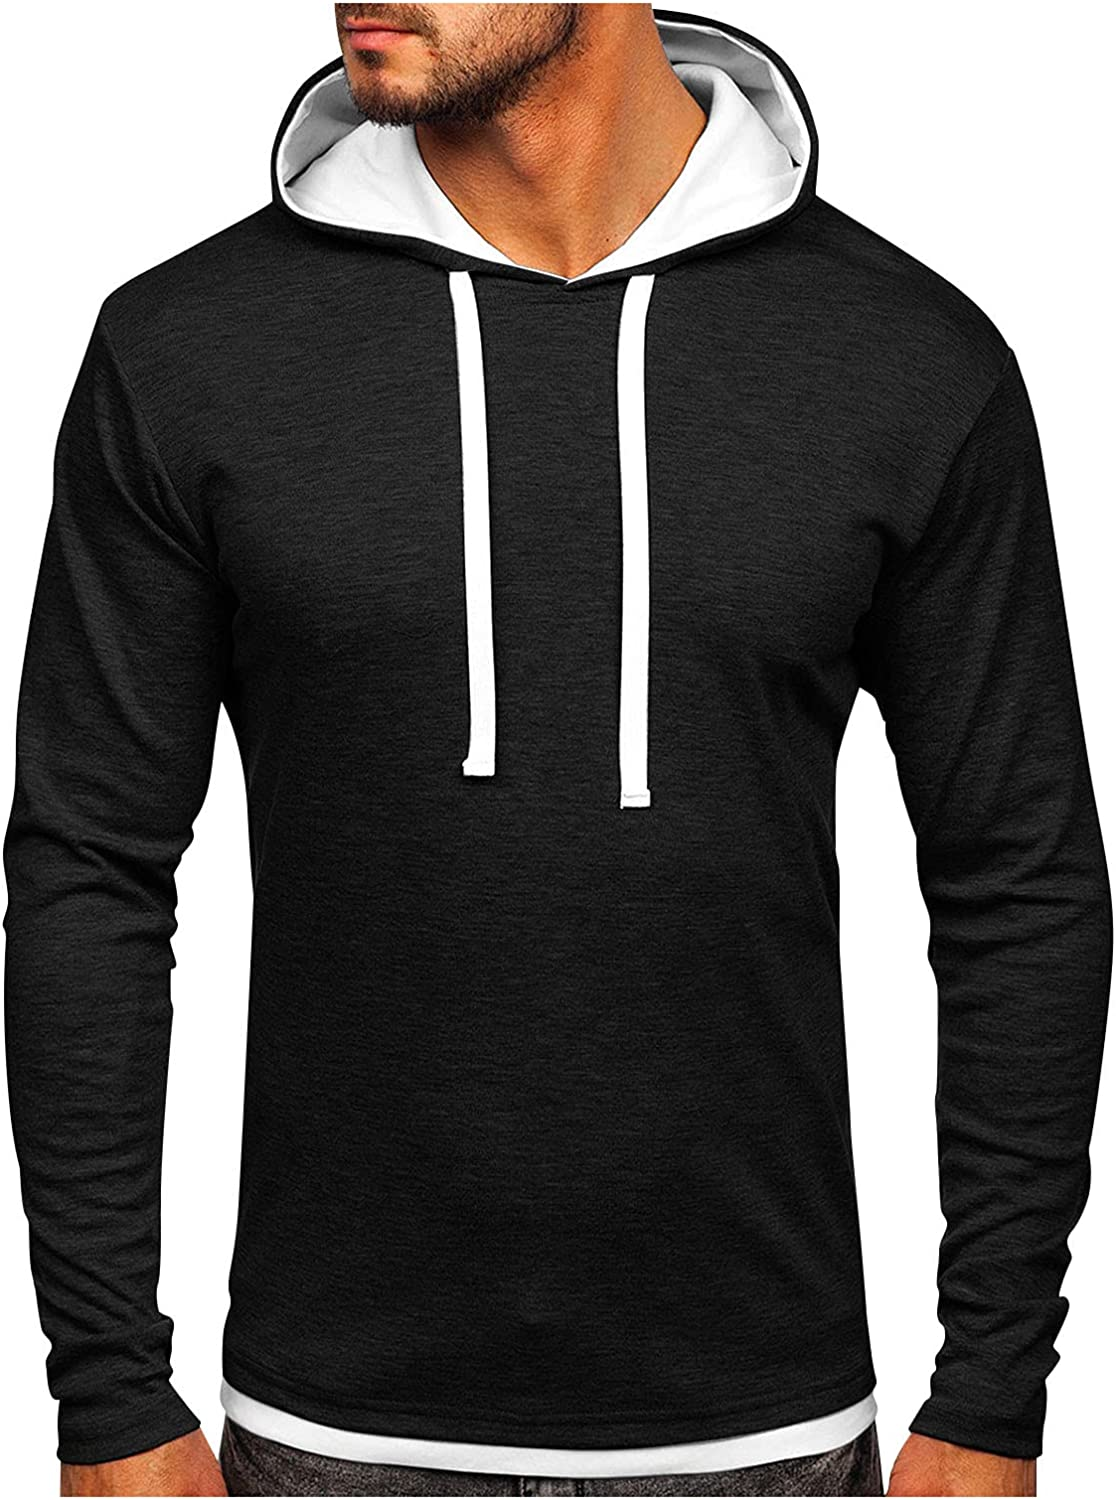 Men's 2021 New Hoodies Casual Long Sleeve Hooded Sweatshirts Loose Solid Color Drawstring Pullover Shirts